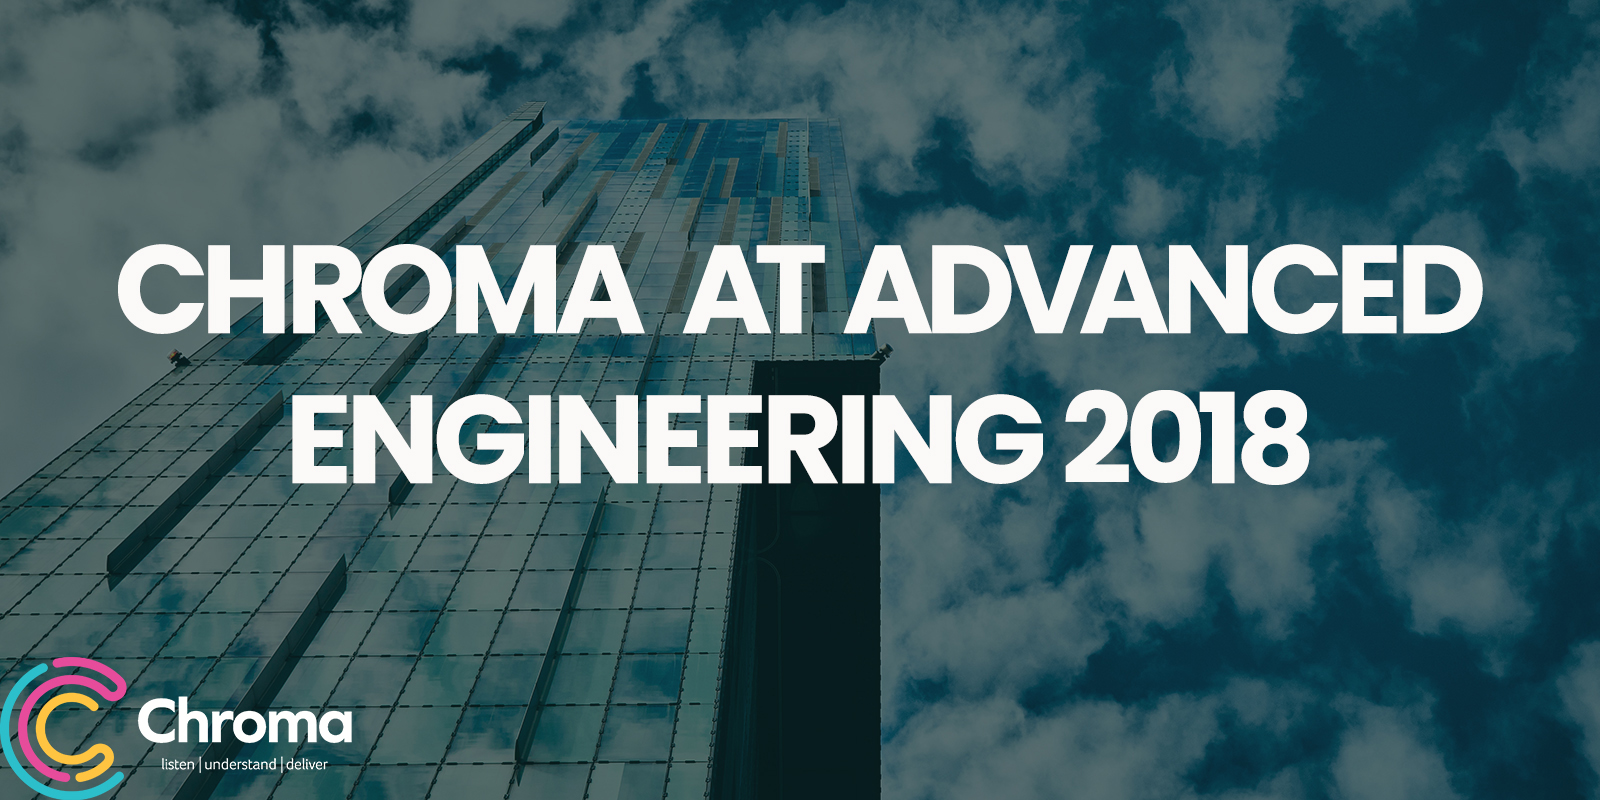 Chroma Engineering at Advanced Engineering 2018